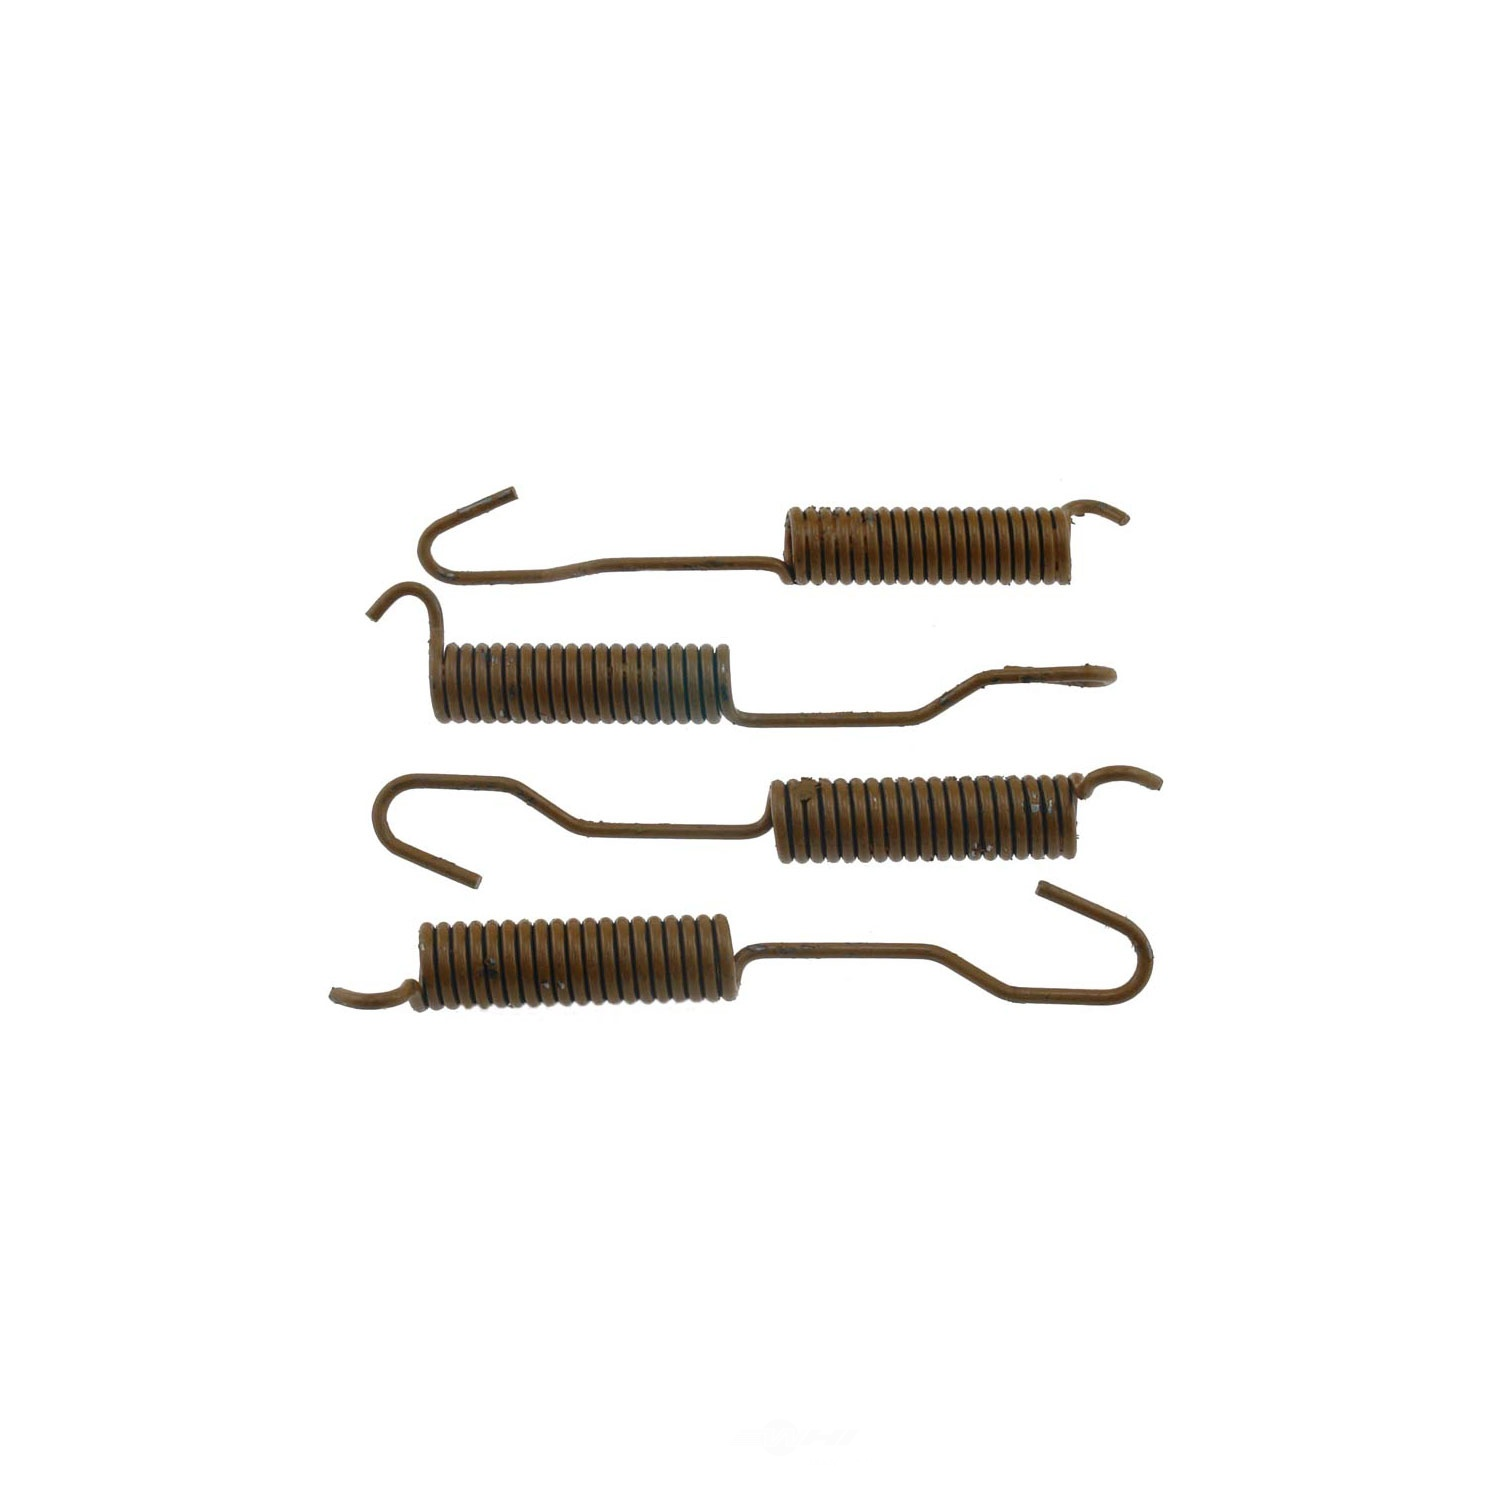 CARLSON QUALITY BRAKE PARTS - Drum Brake Shoe Return Spring Kit - CRL H111